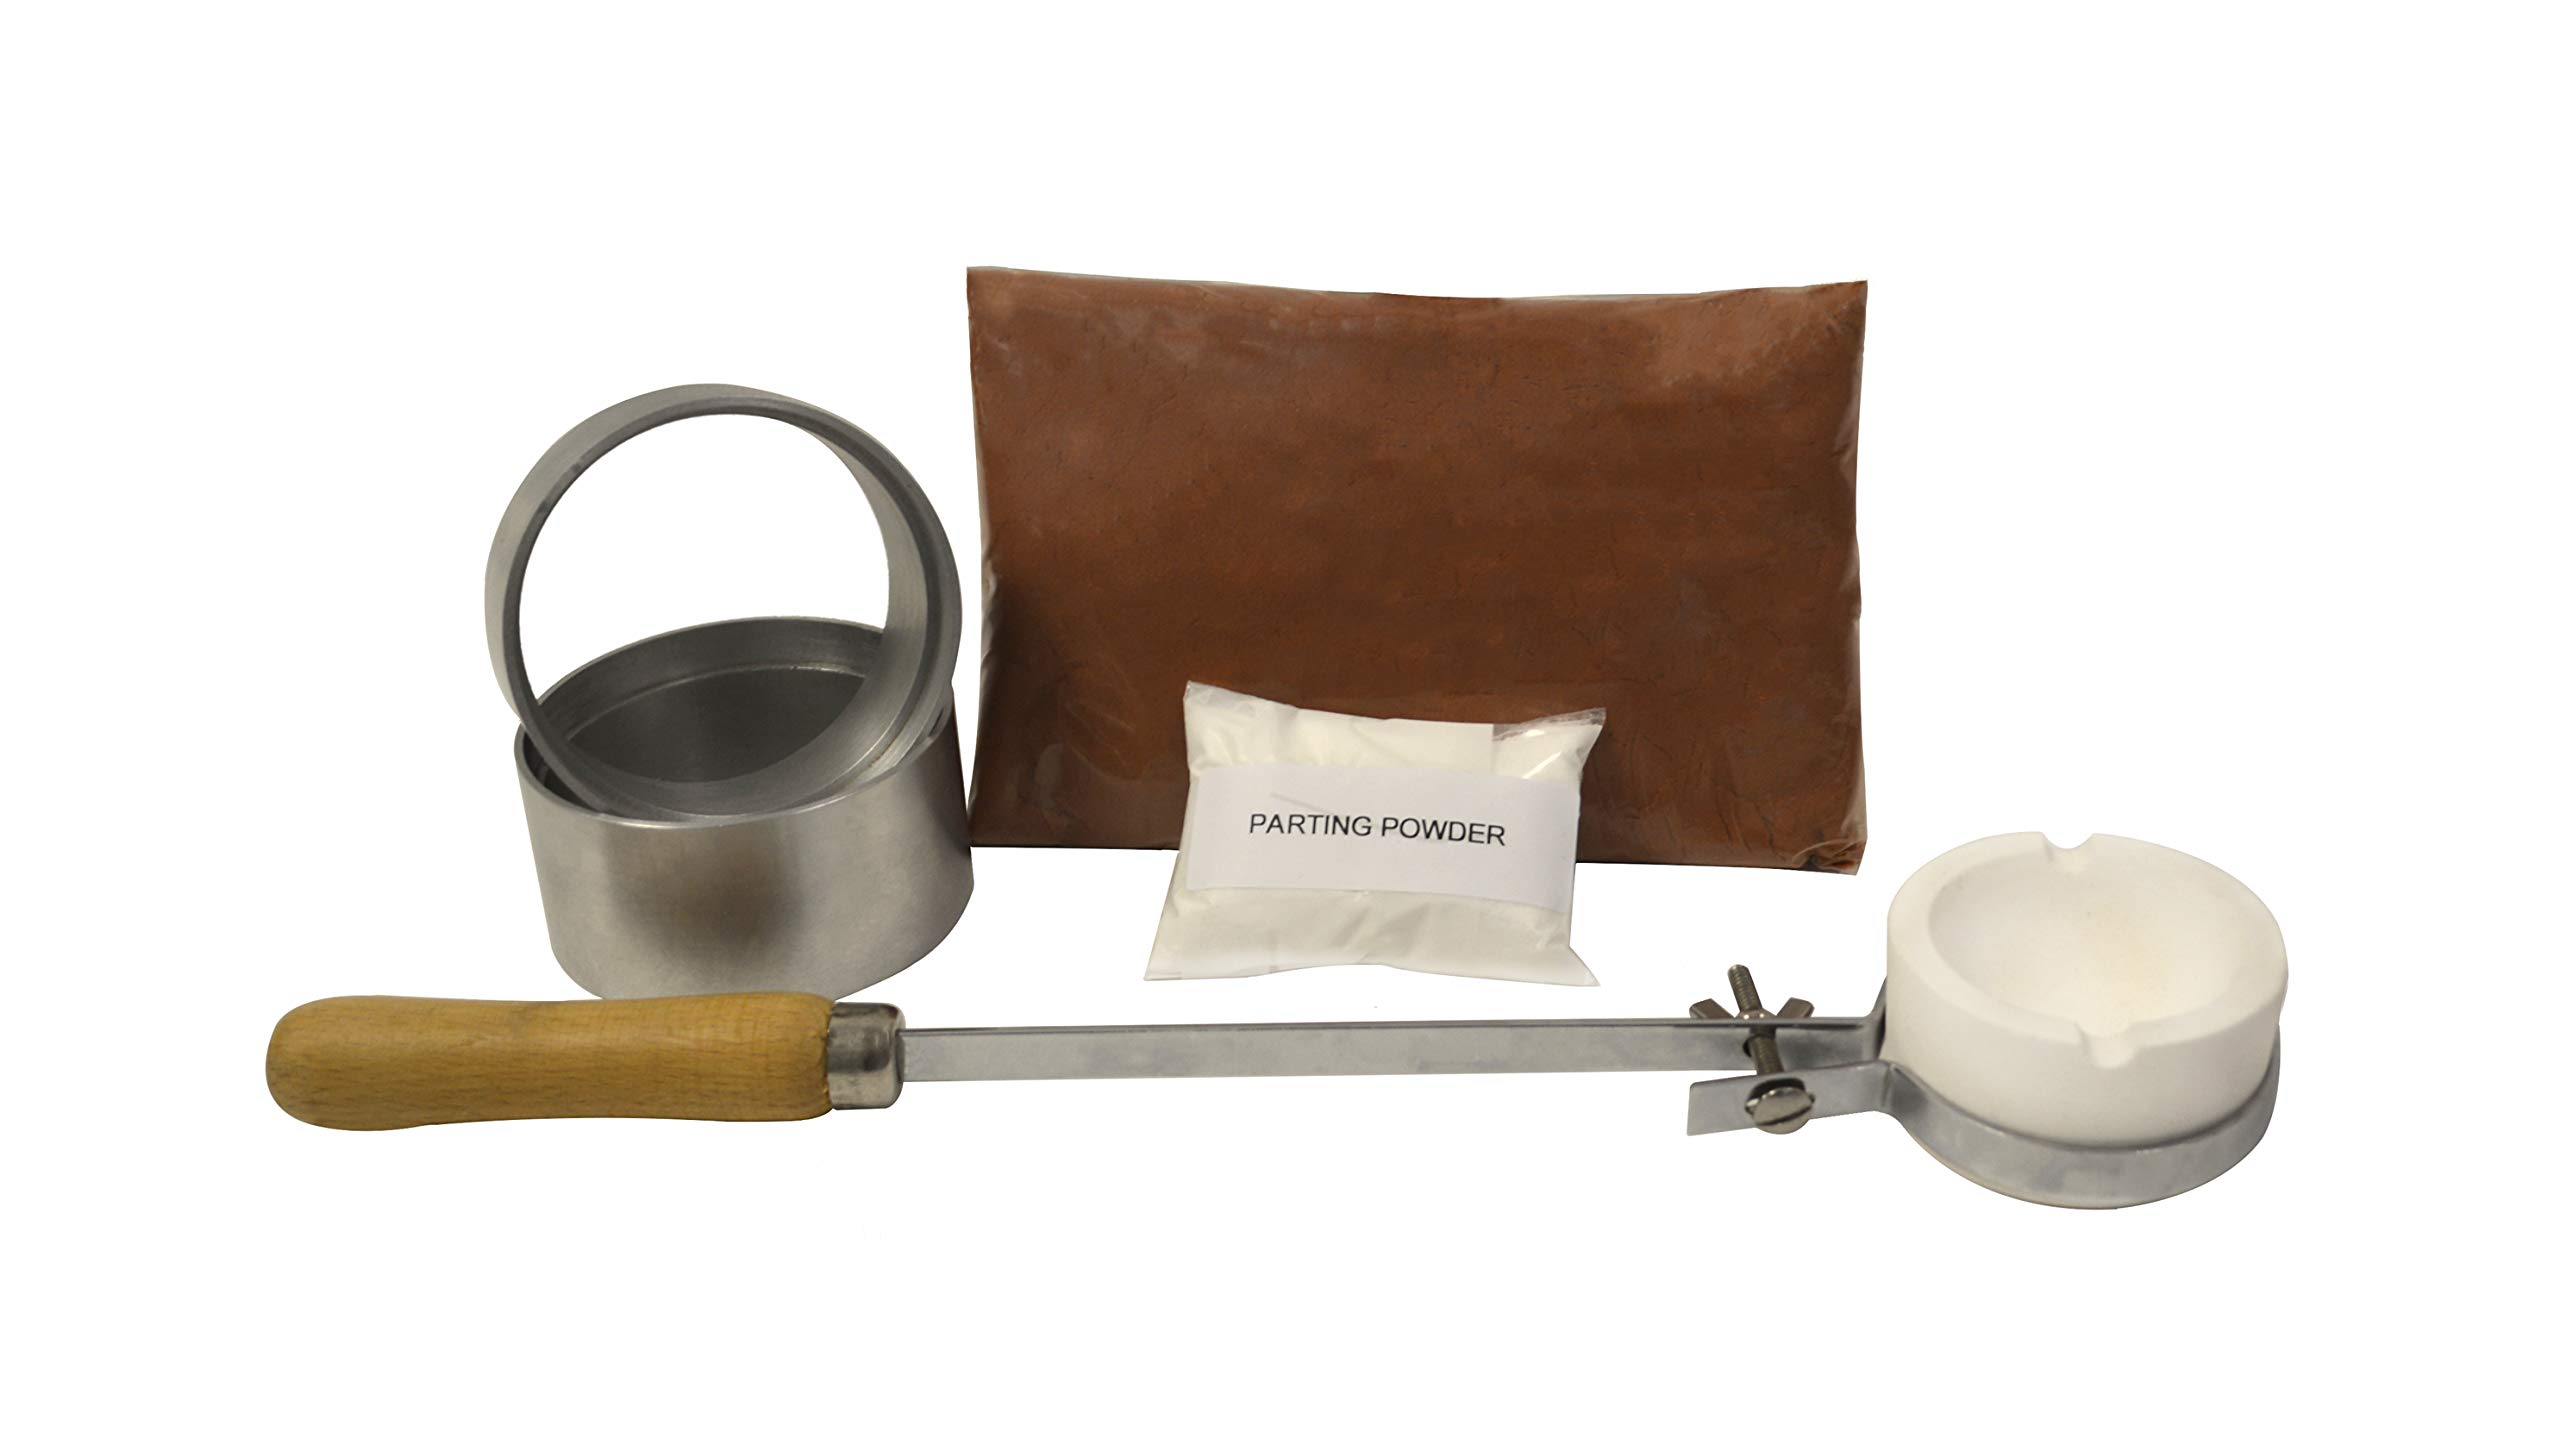 Basic Quick Cast Sand Casting Kit Jewelry Making Precious Metal Casting Gold Silver Pouring Set with Accessories